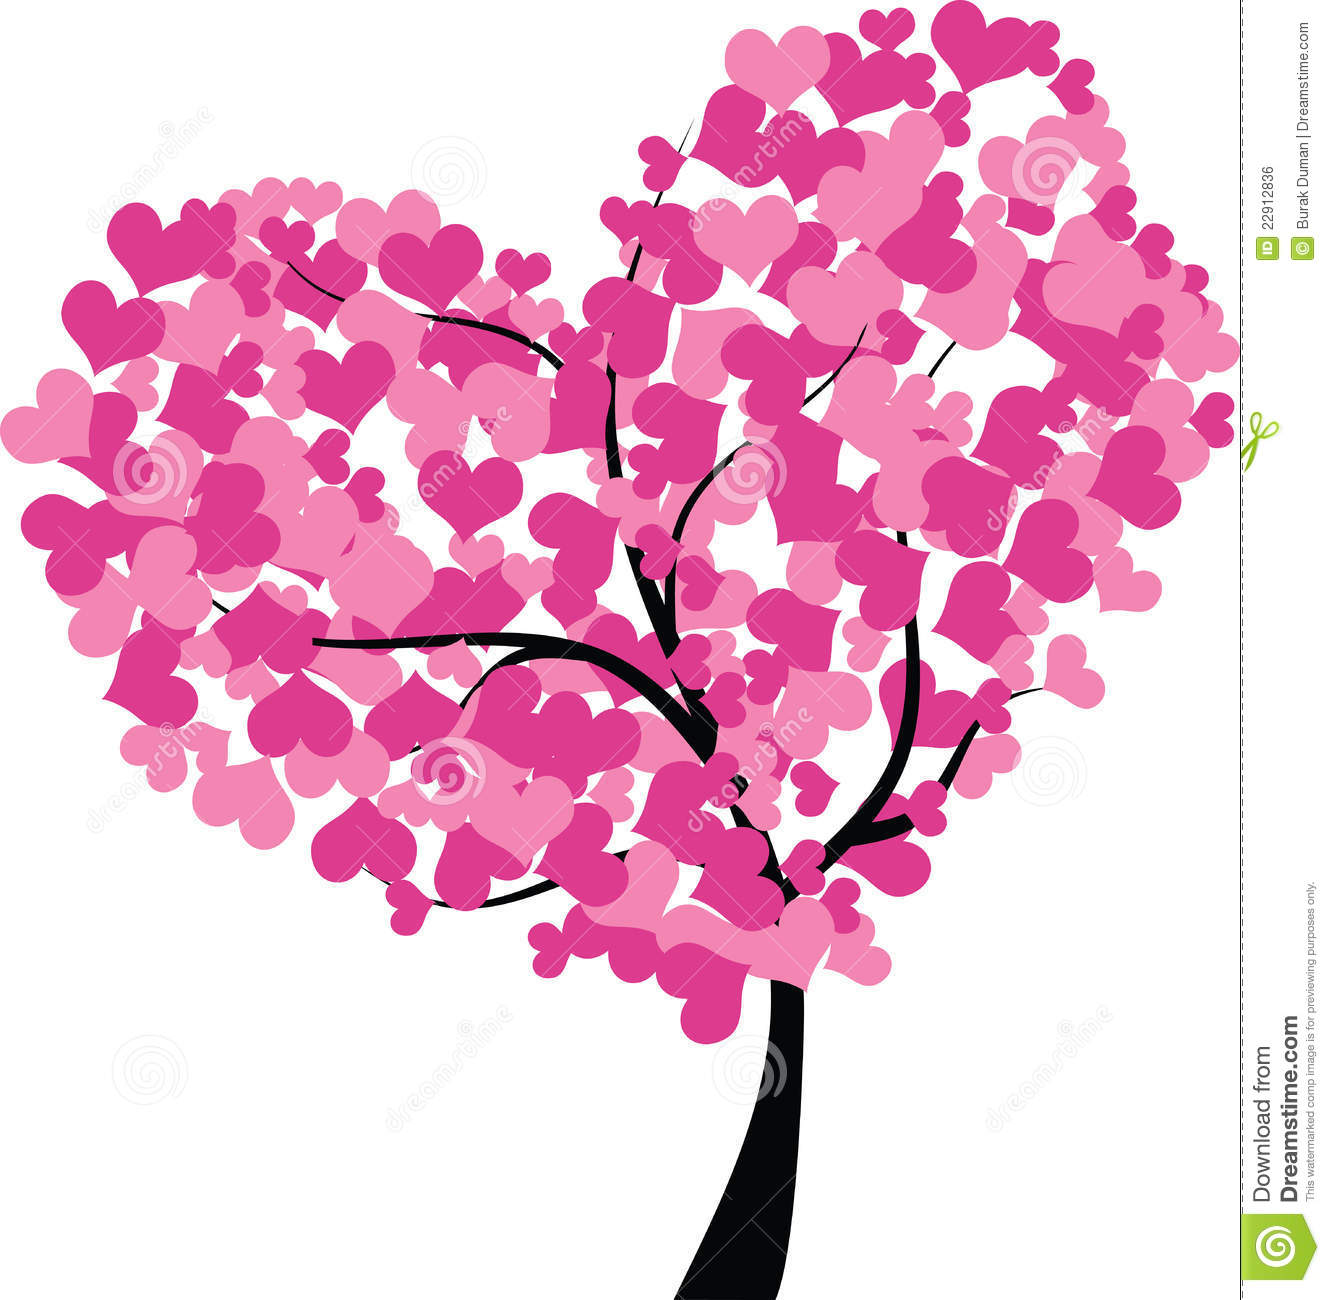 Heart tree royalty free stock image image 22912836 - Coeur a colorier ...